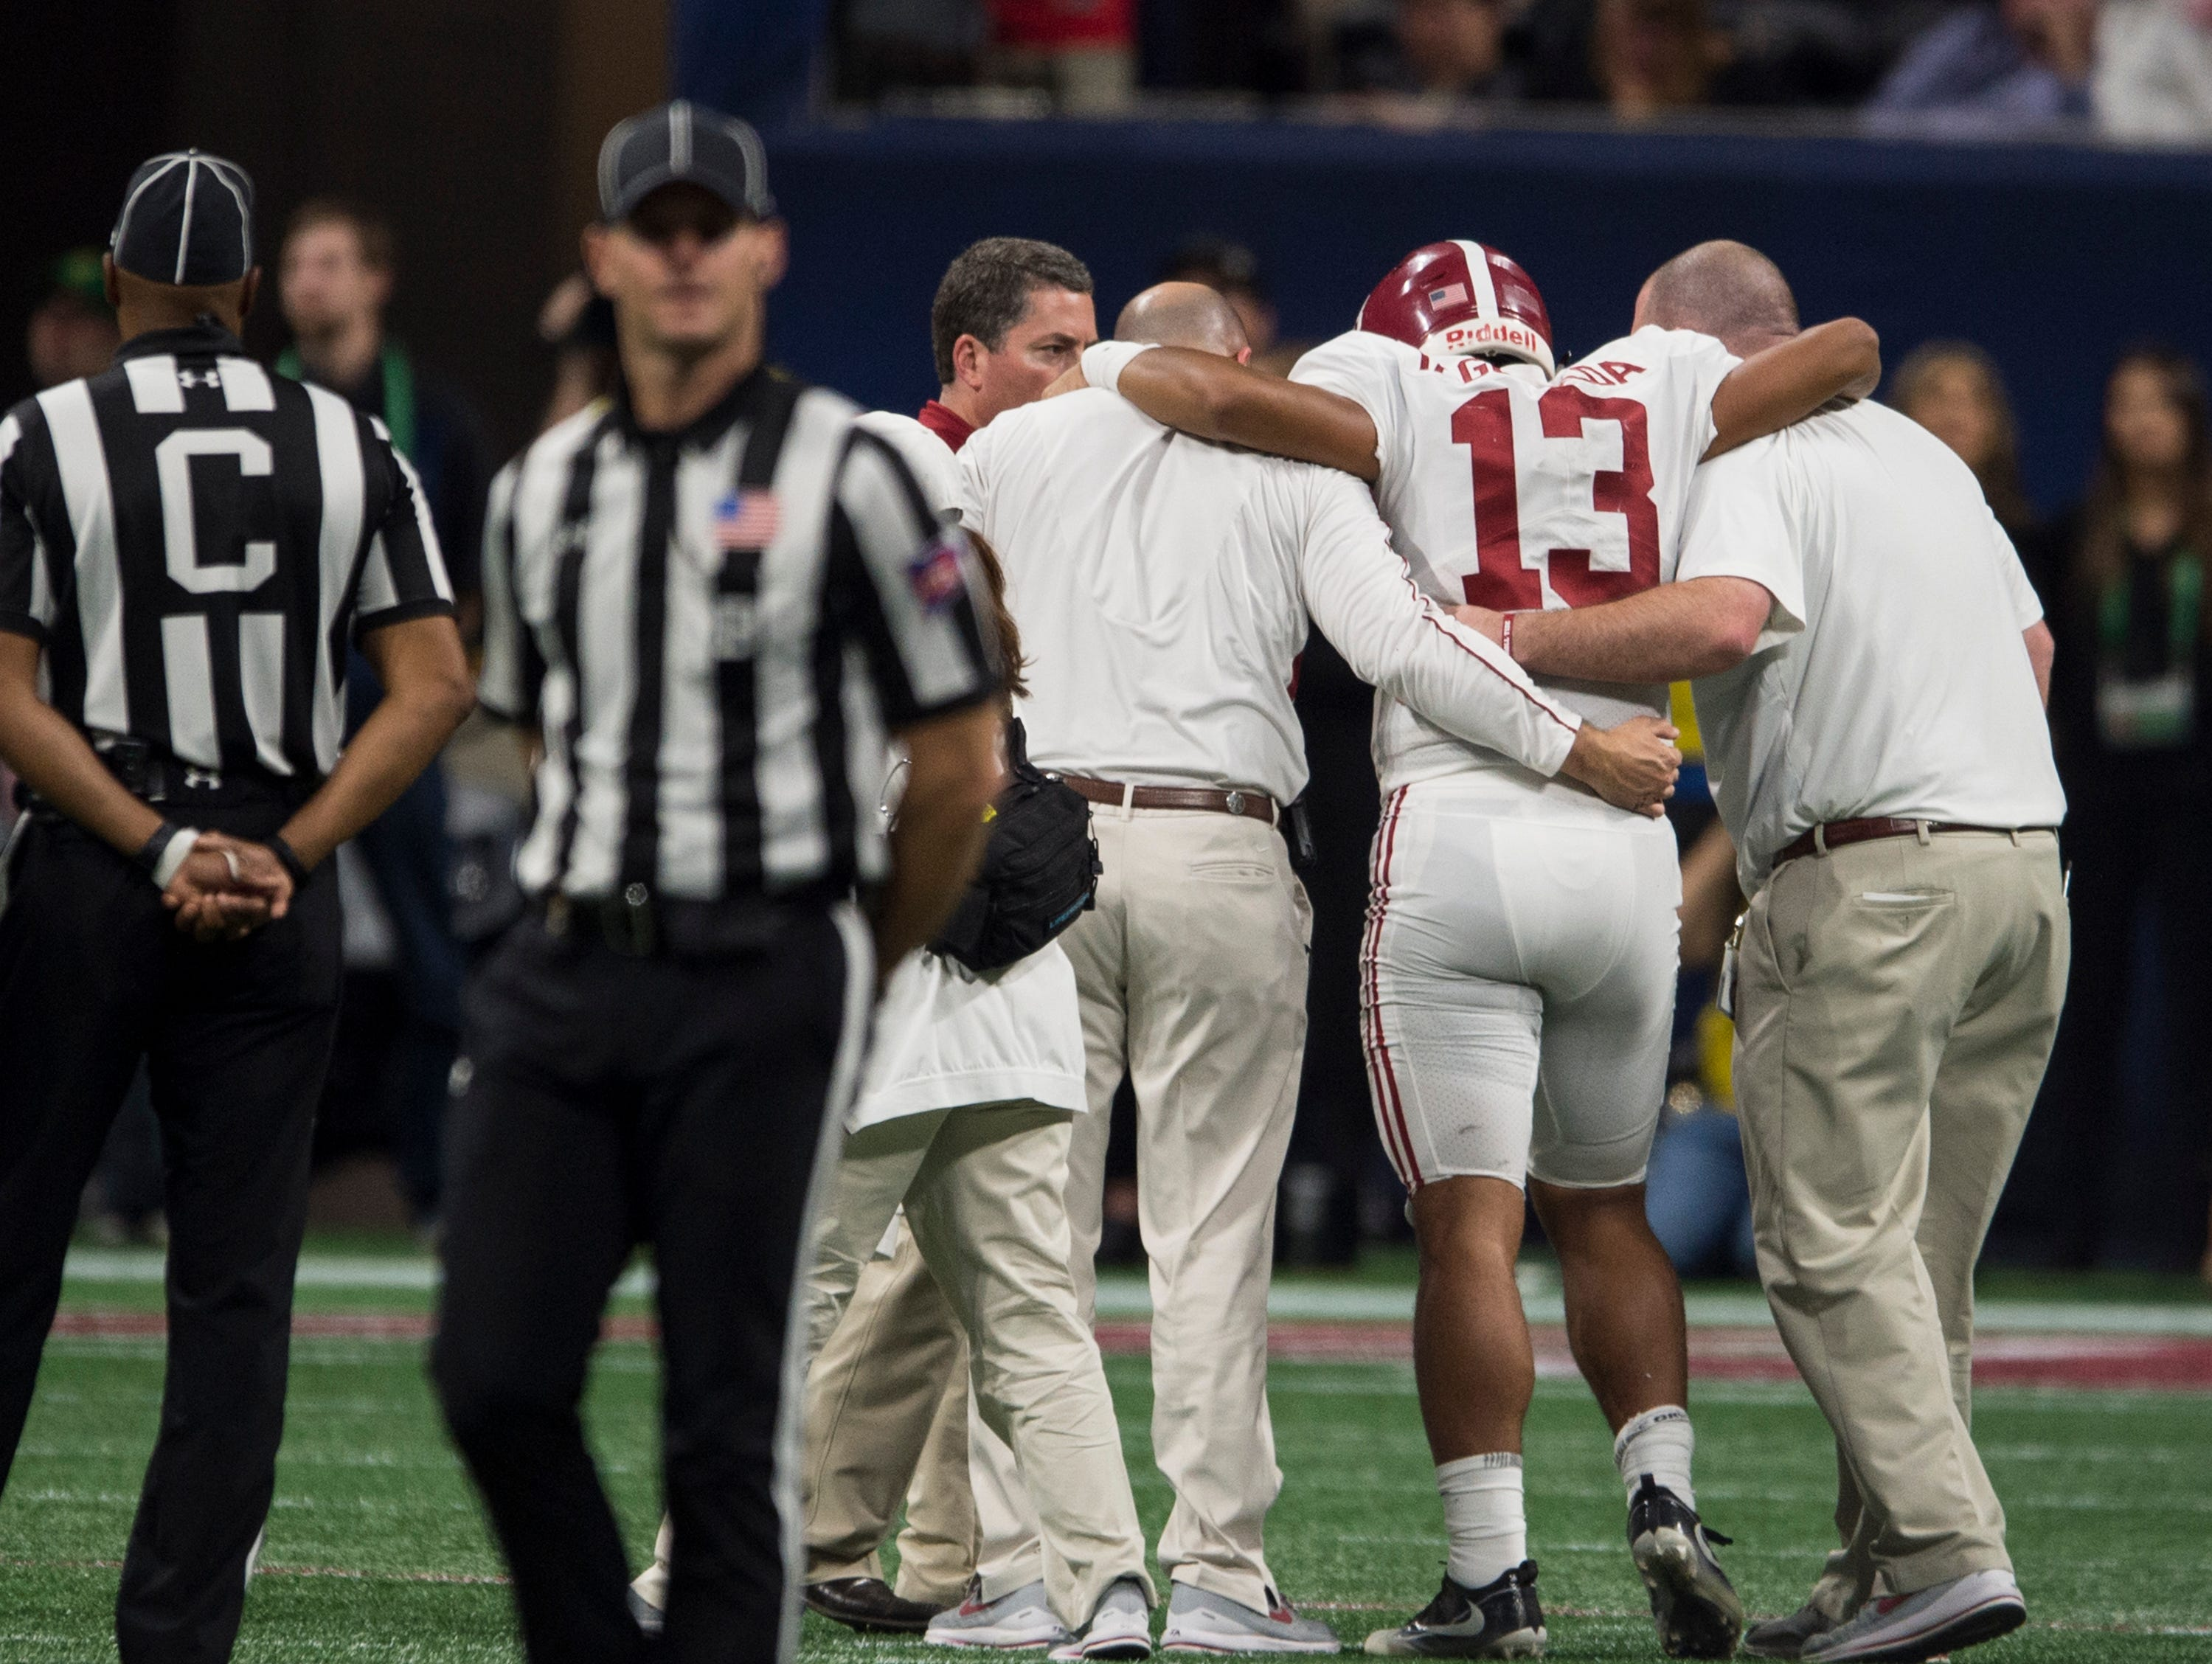 Alabama quarterback Tua Tagovailoa (13) is help off the field after suffering an injury during the SEC Championship game at Mercedes-Benz Stadium in Atlanta, Ga., on Saturday Dec. 1, 2018. Alabama defeated Georgia 35-28.